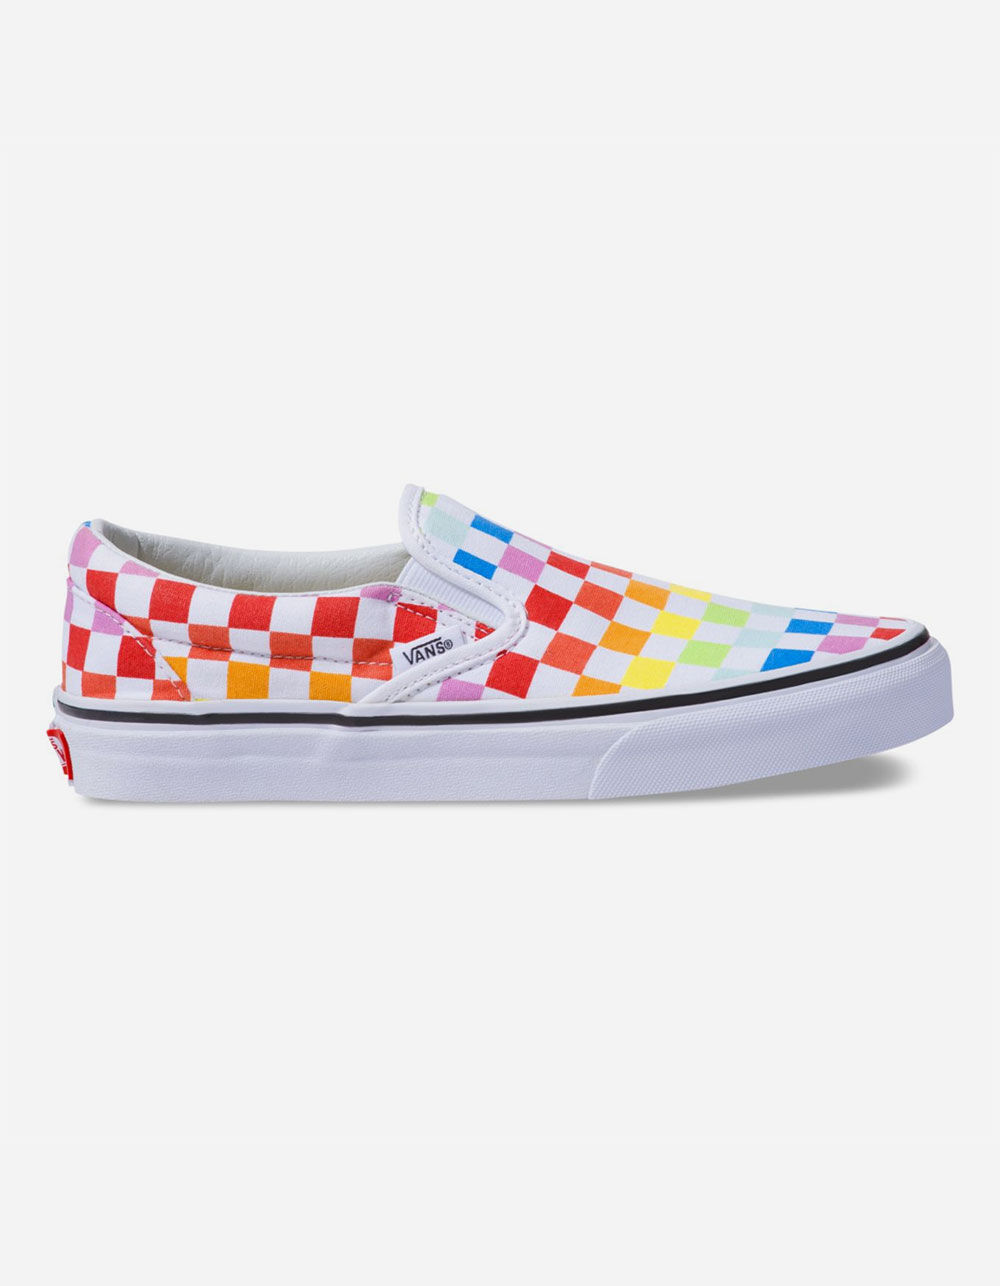 VANS Checkerboard Slip-On Rainbow Shoes